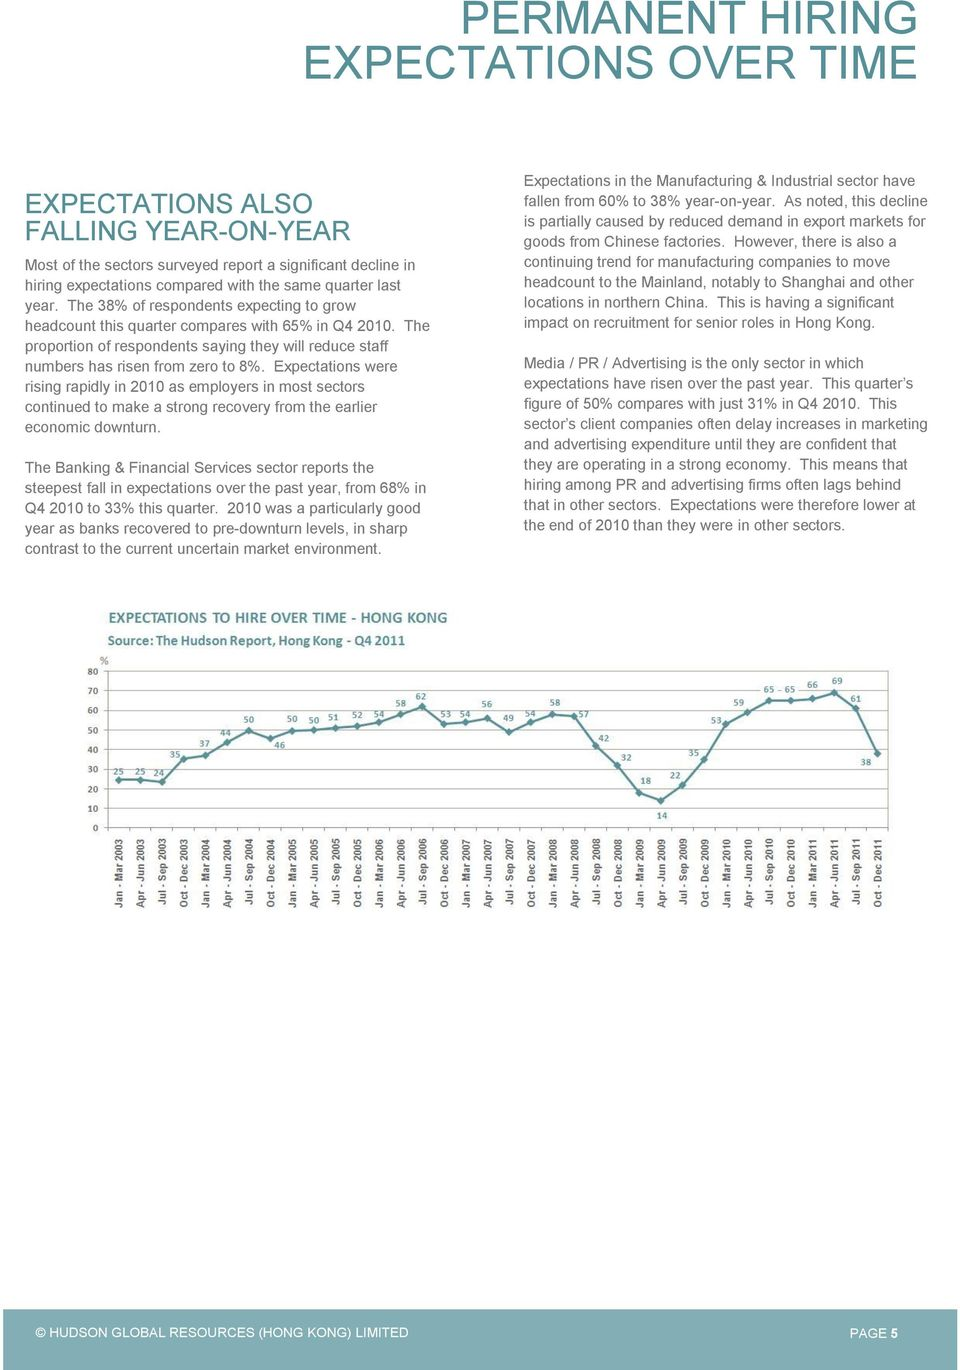 Expectations were rising rapidly in 2010 as employers in most sectors continued to make a strong recovery from the earlier economic downturn.